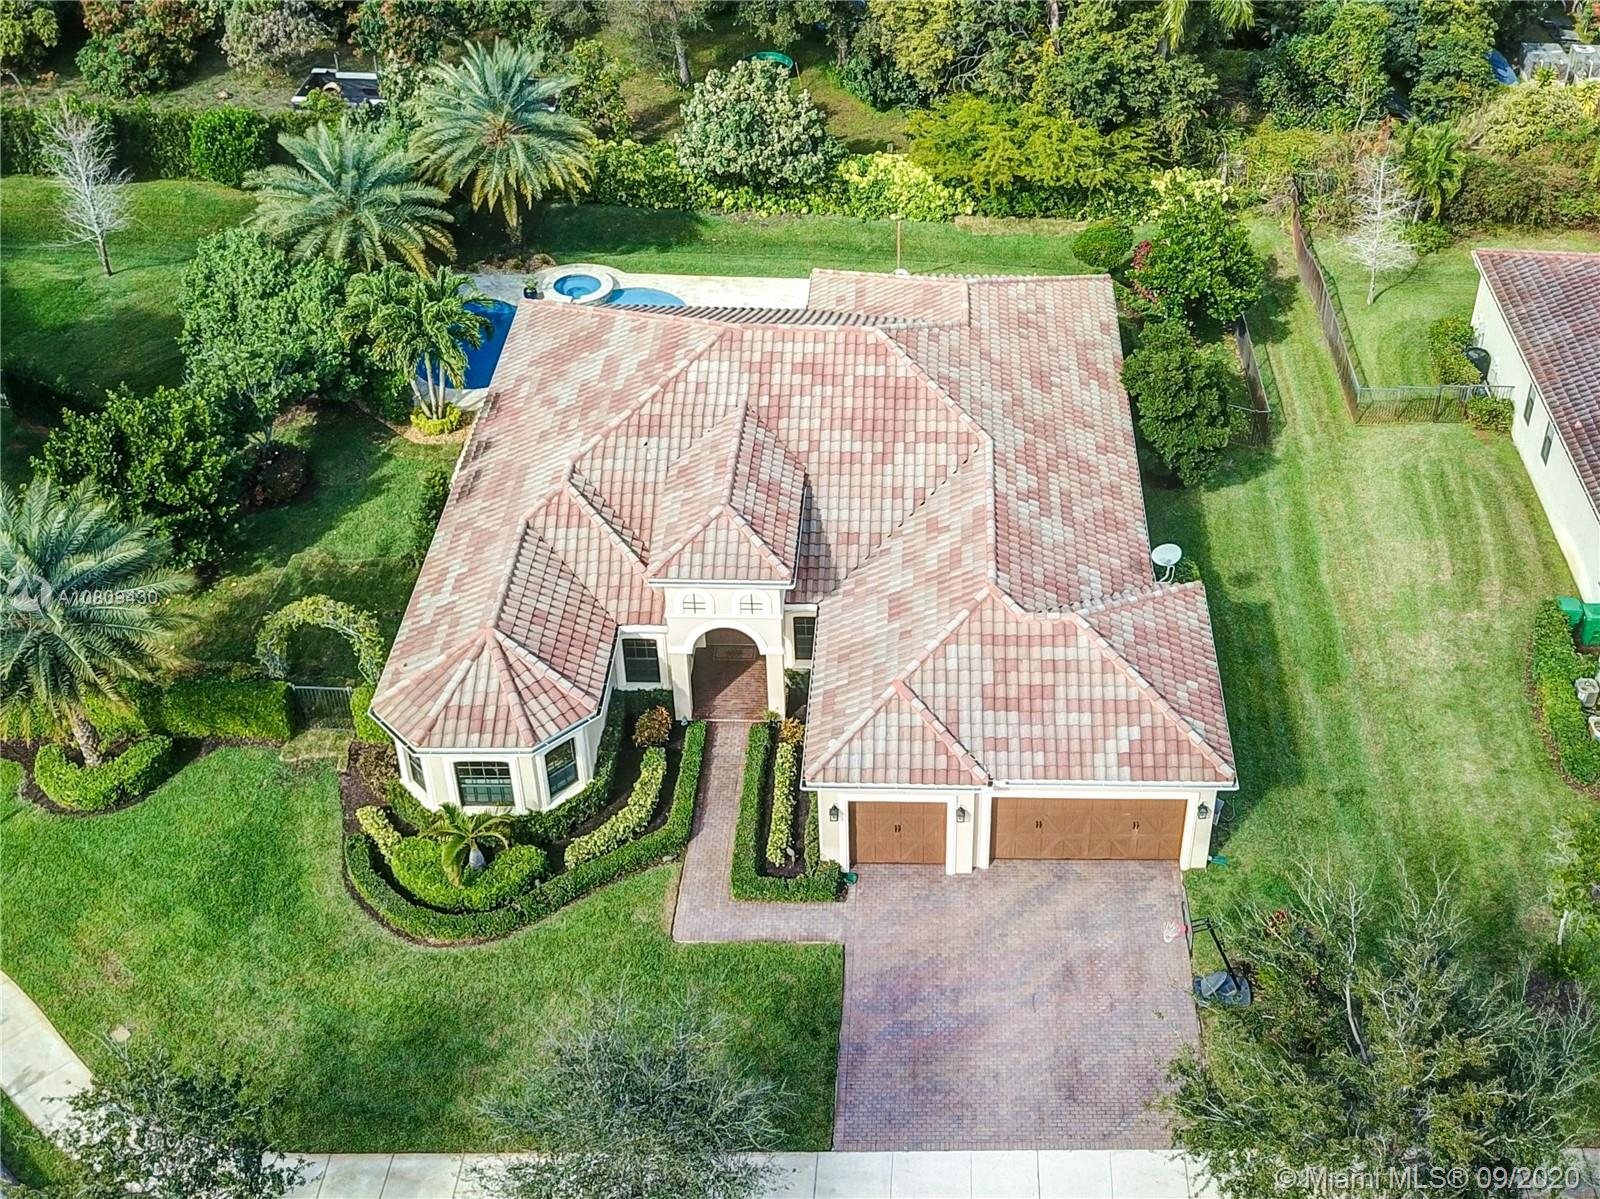 """RARE OPPORTUNITY in coveted Cooper City!!!  This TURN-KEY estate home of 5bd, 3br sits in the exclusive community of The Ranches.  Home sits on a 1/2 acre cul de sac lot and offers state of the art kitchen with TWO dishwashers, stone fireplace, tray ceilings, crown moldings, impact doors and windows and """"smart home"""" features. Backyard PARADISE:  with over 100K spent on  landscaping (fruit trees) and the resort style salt water pool with LED lighting, stone accents, a sun deck, travertine pool deck, all controlled from your smart phone.  Cooper City Schools!"""